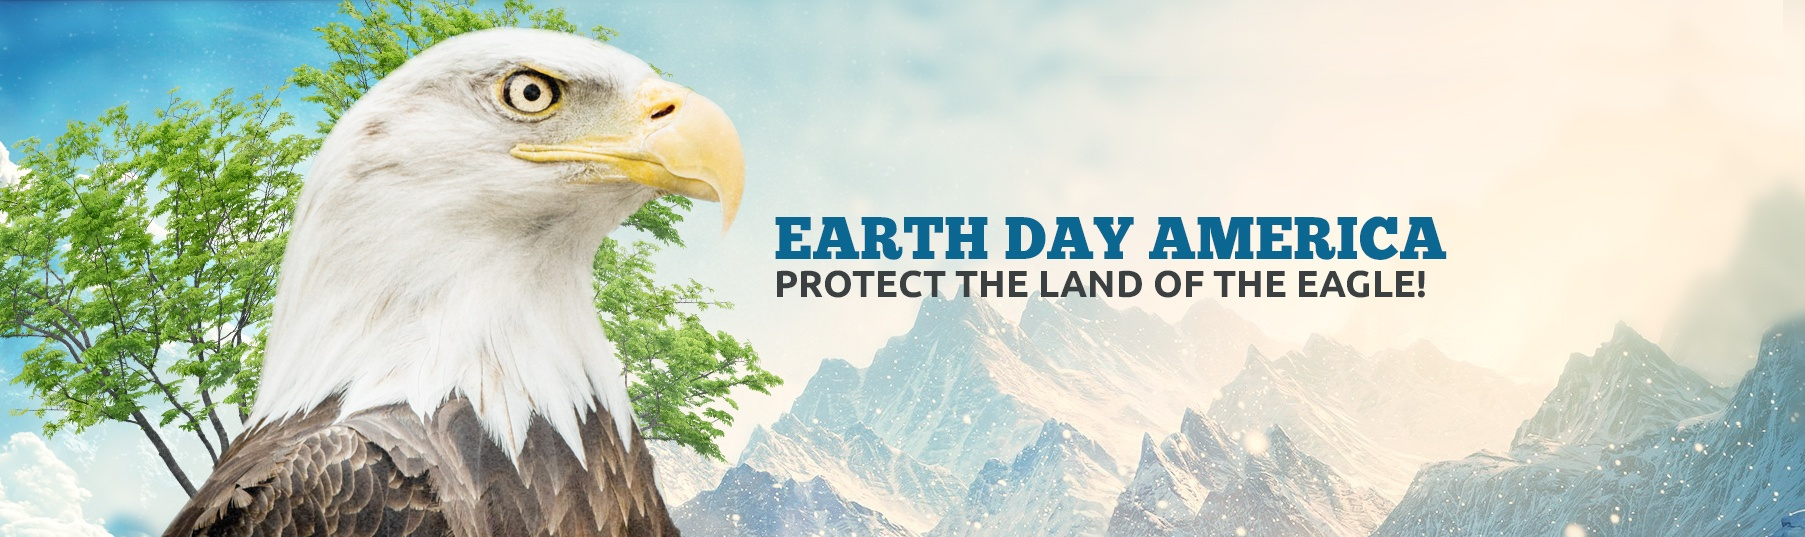 Earth Day America